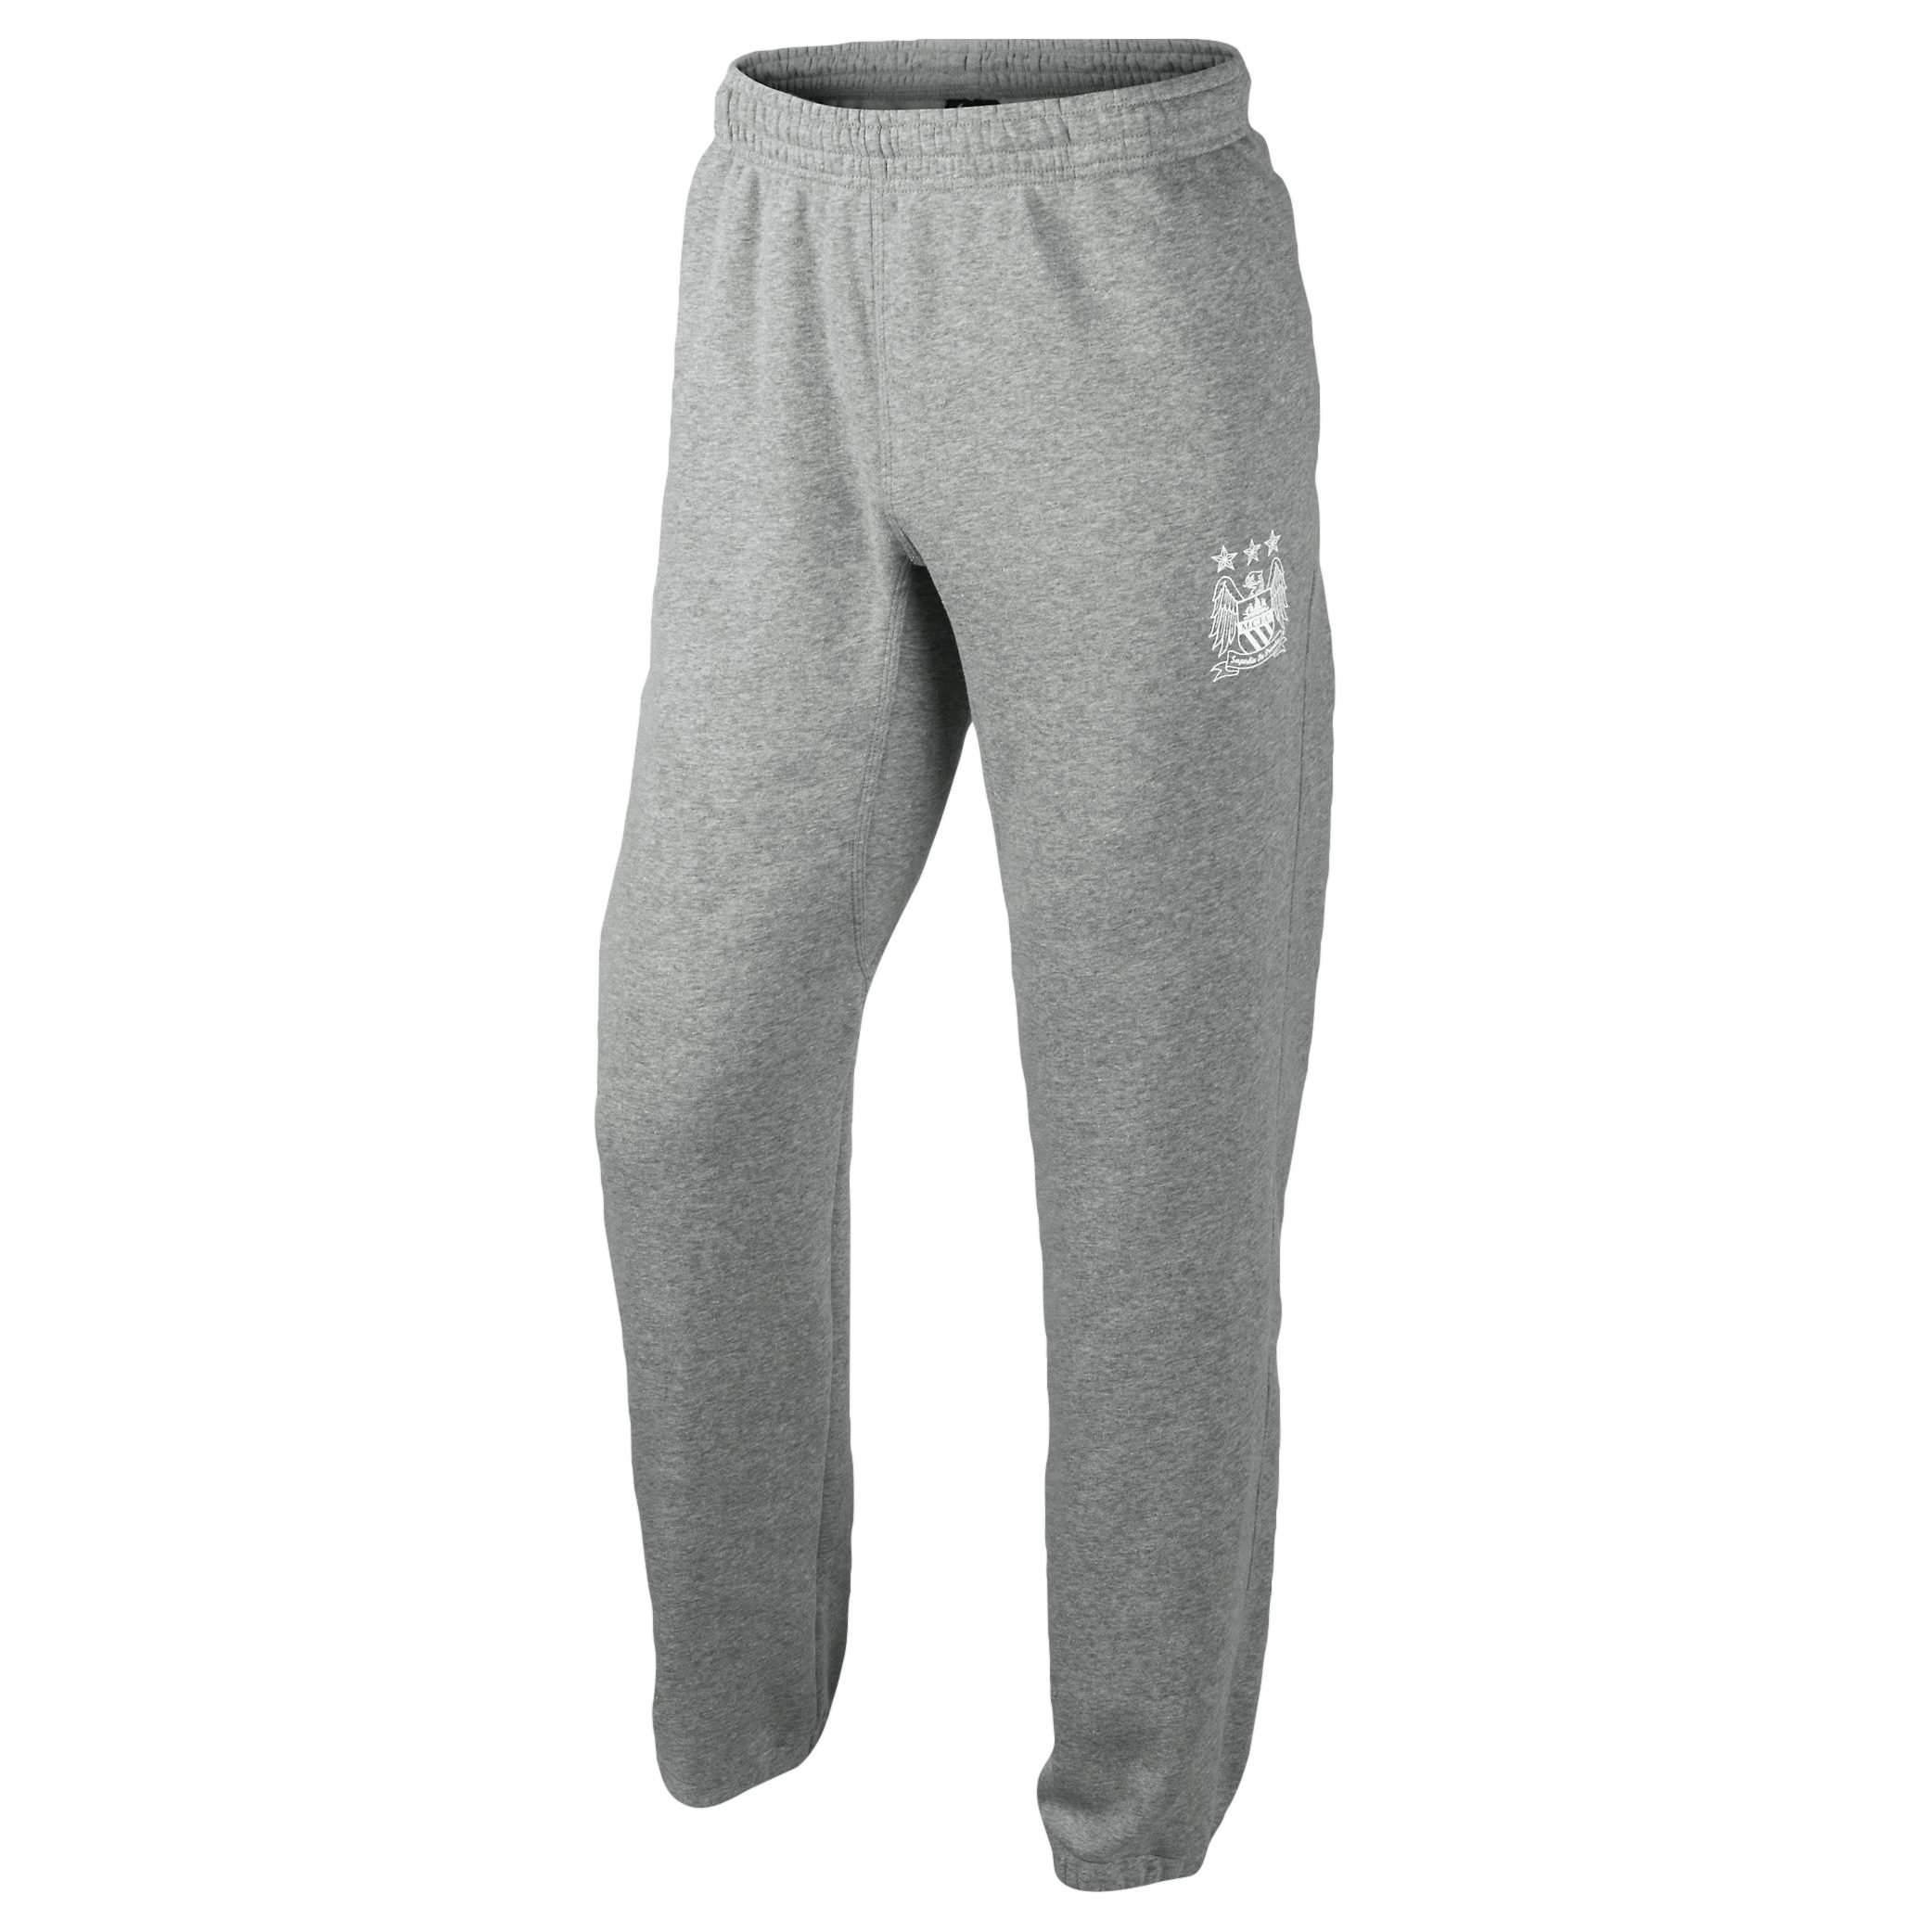 Manchester City Core Fleece Cuff Pant - Mens Grey